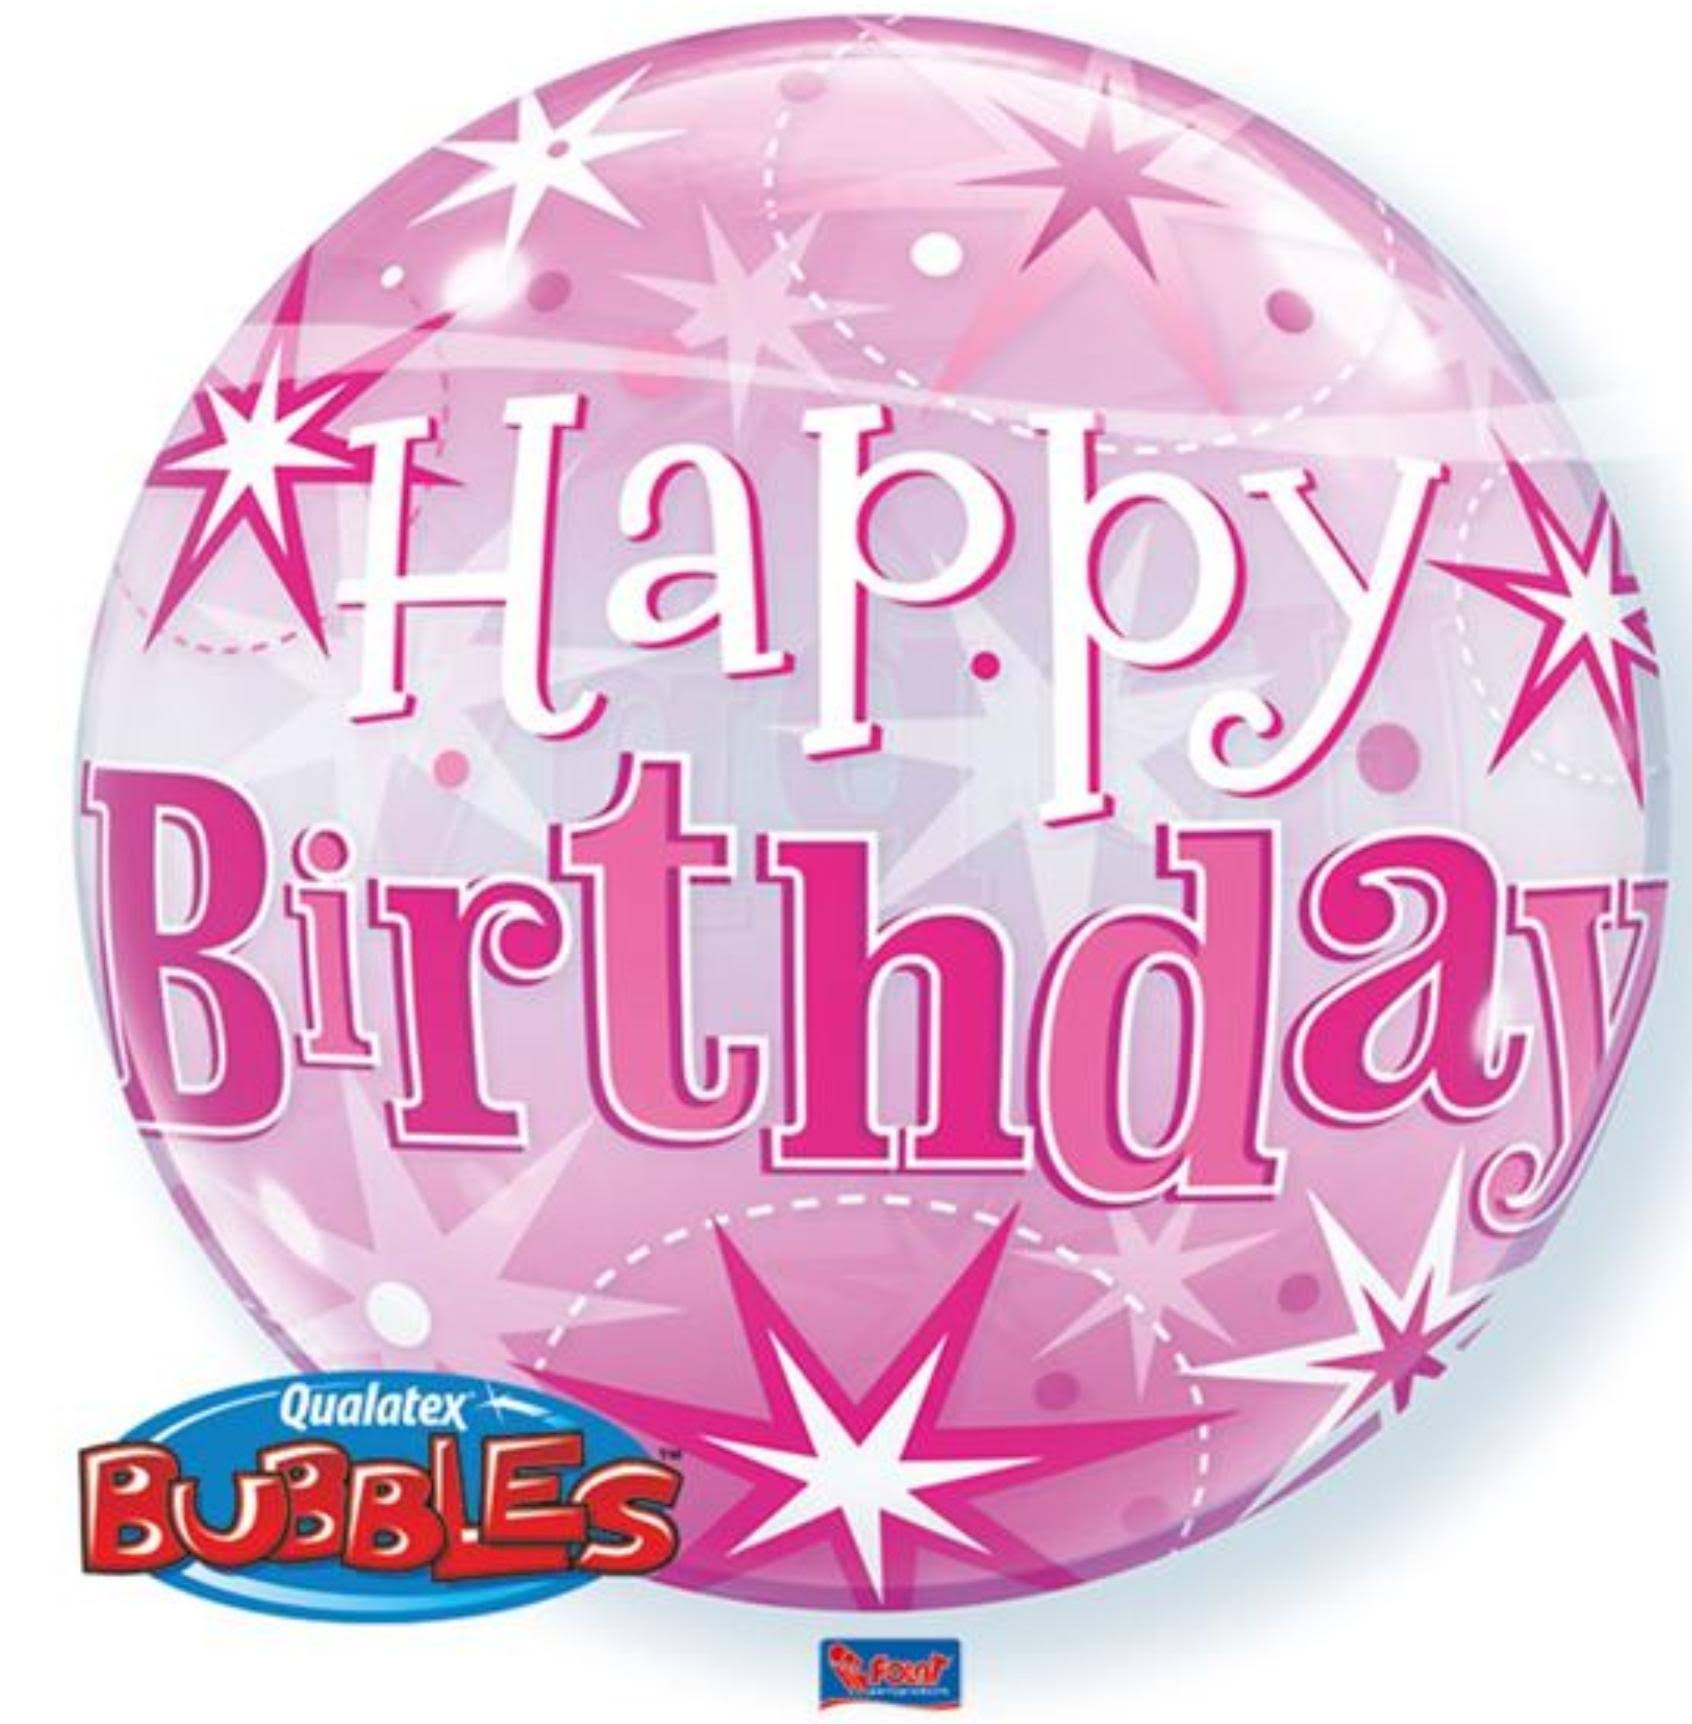 Pink Happy Birthday Balloon Bubble Qualatex